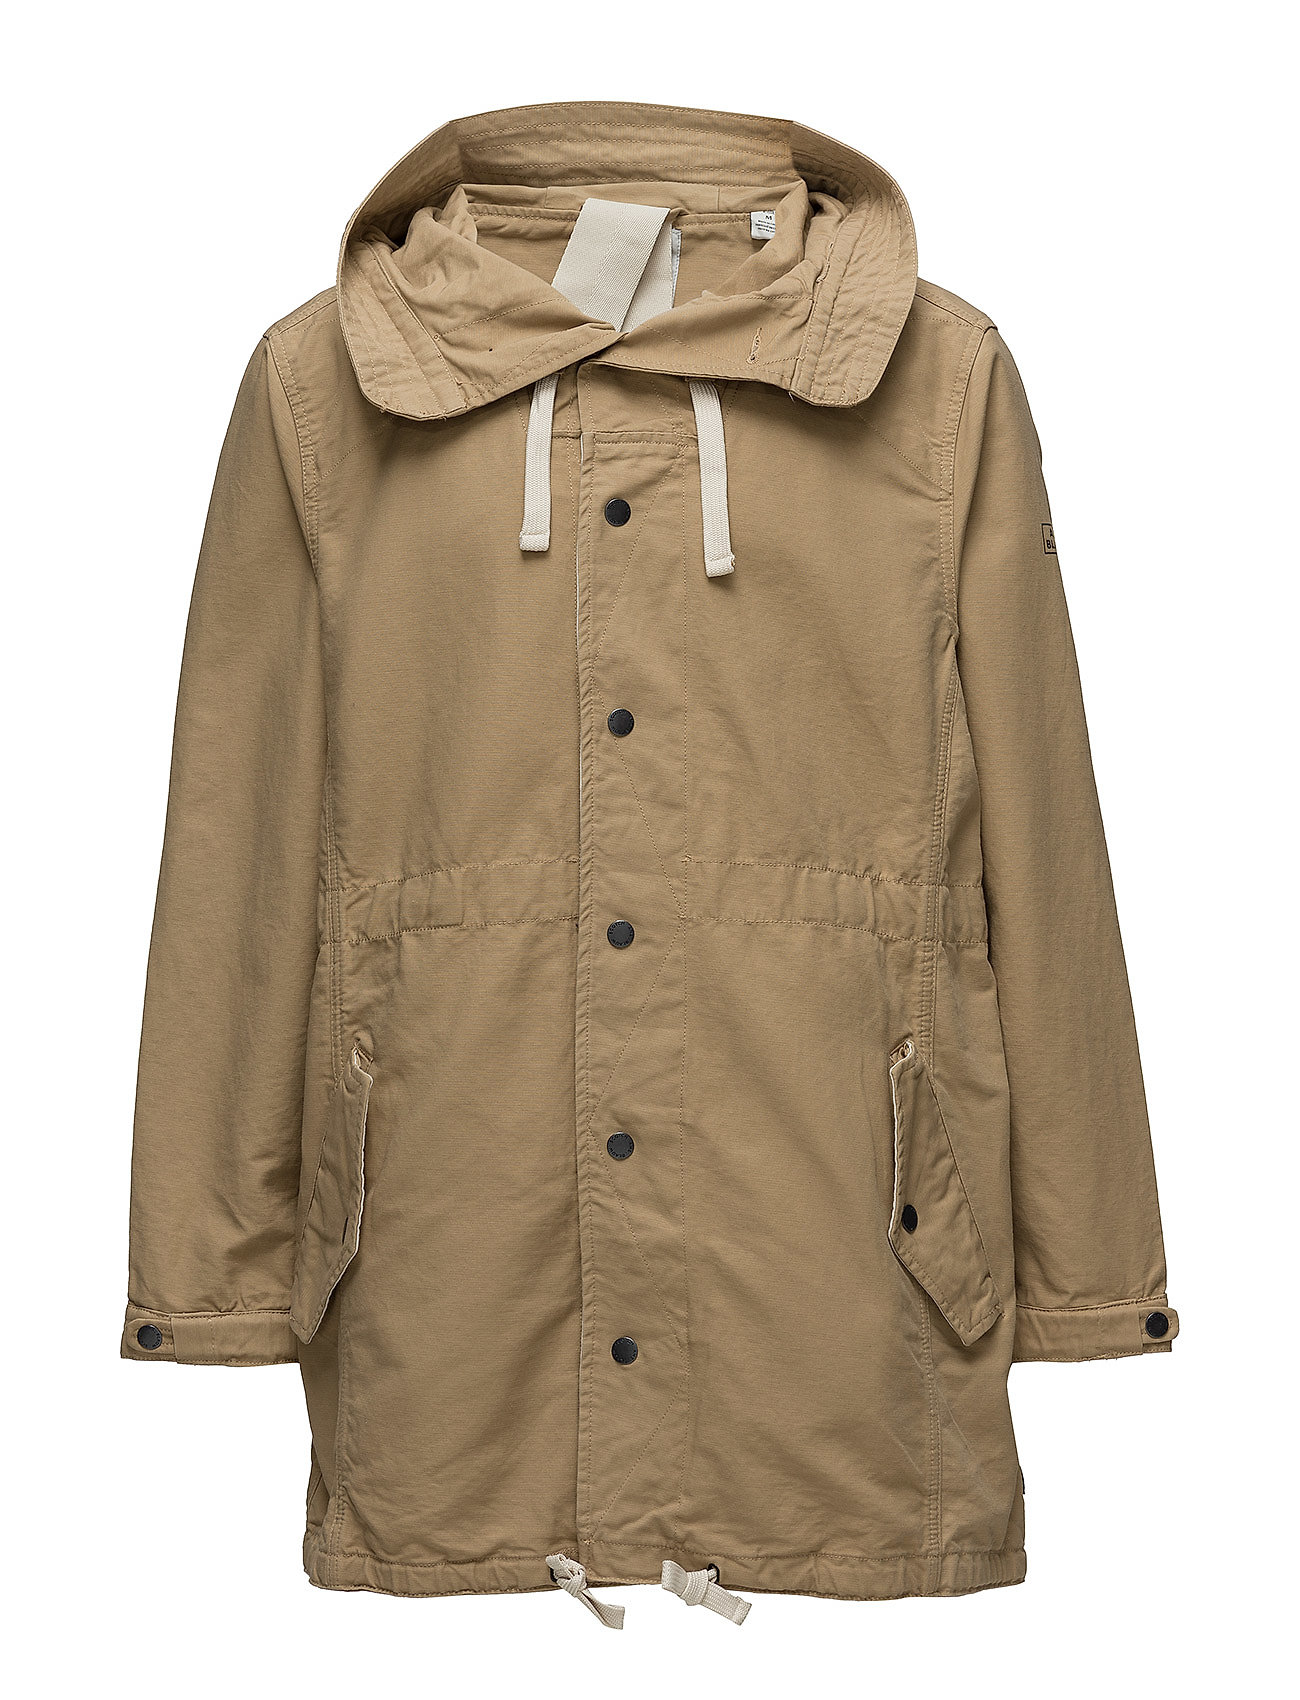 Scotch & Soda Indigo Lamplight parka jacket - KHAKI